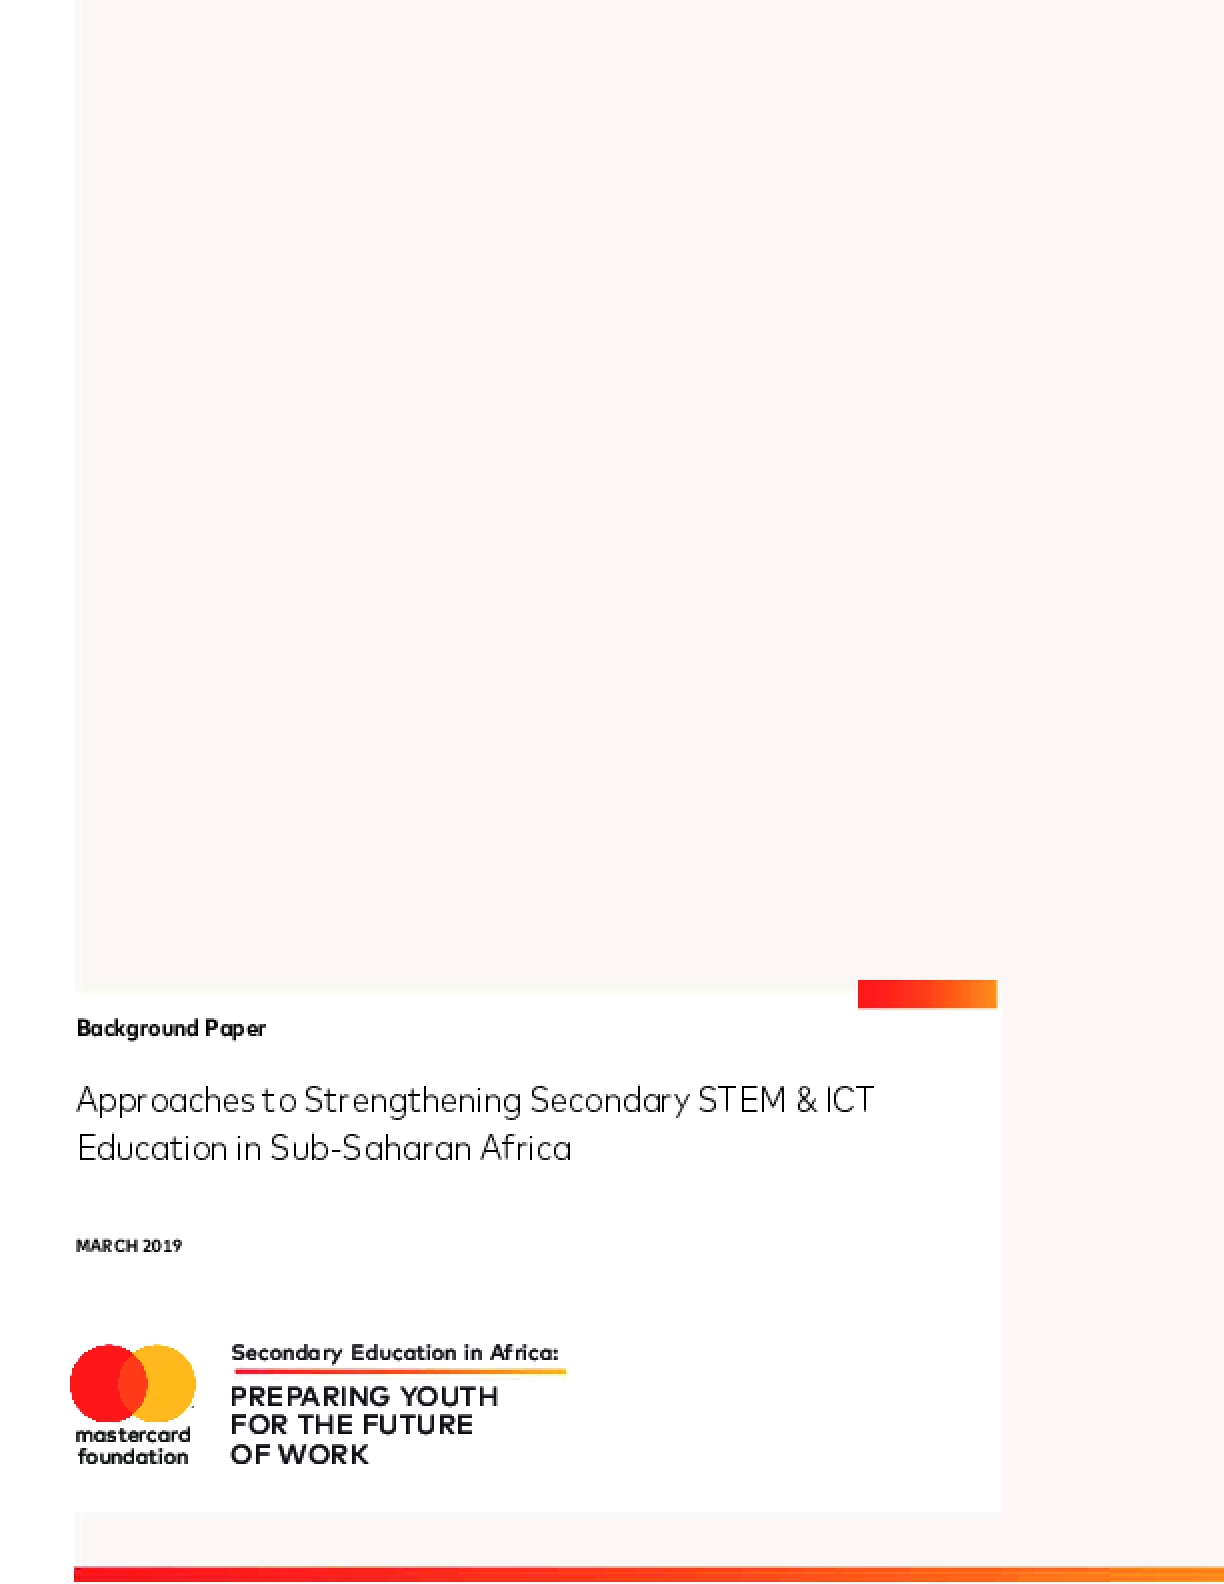 Approaches to Strengthening Secondary STEM & ICT Education in Sub-Saharan Africa